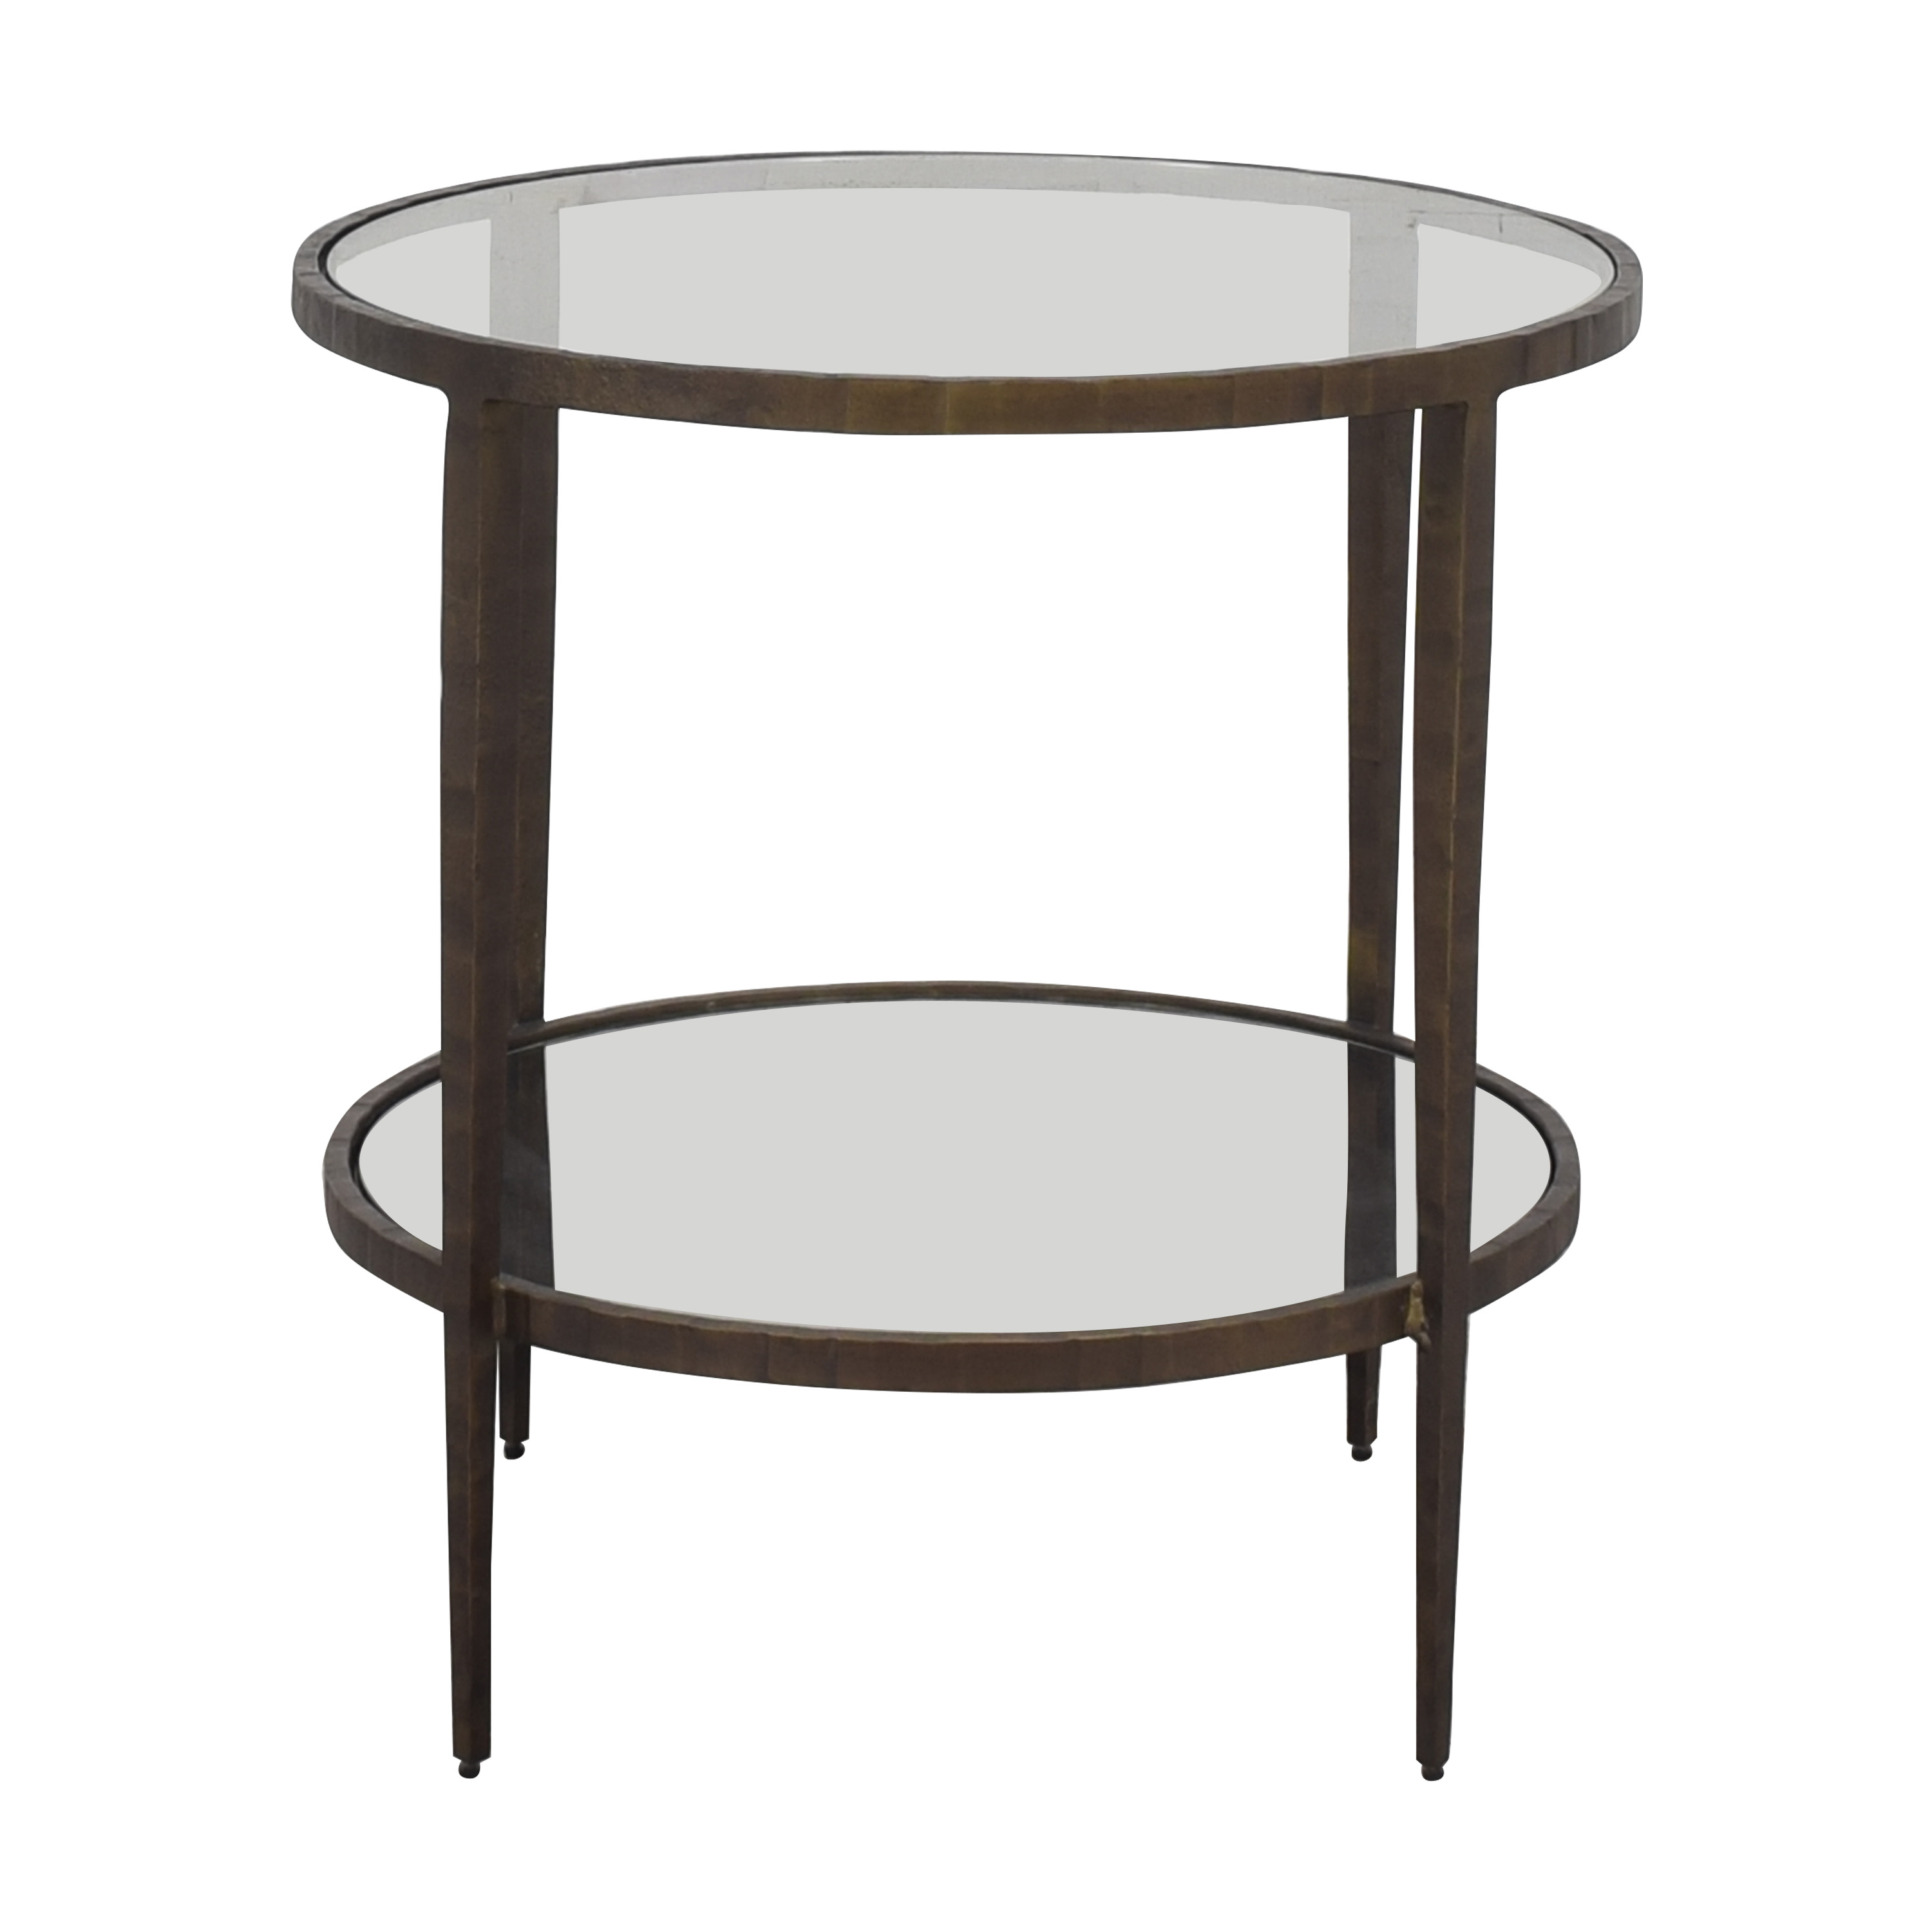 41 off crate barrel crate barrel clairemont side table tables